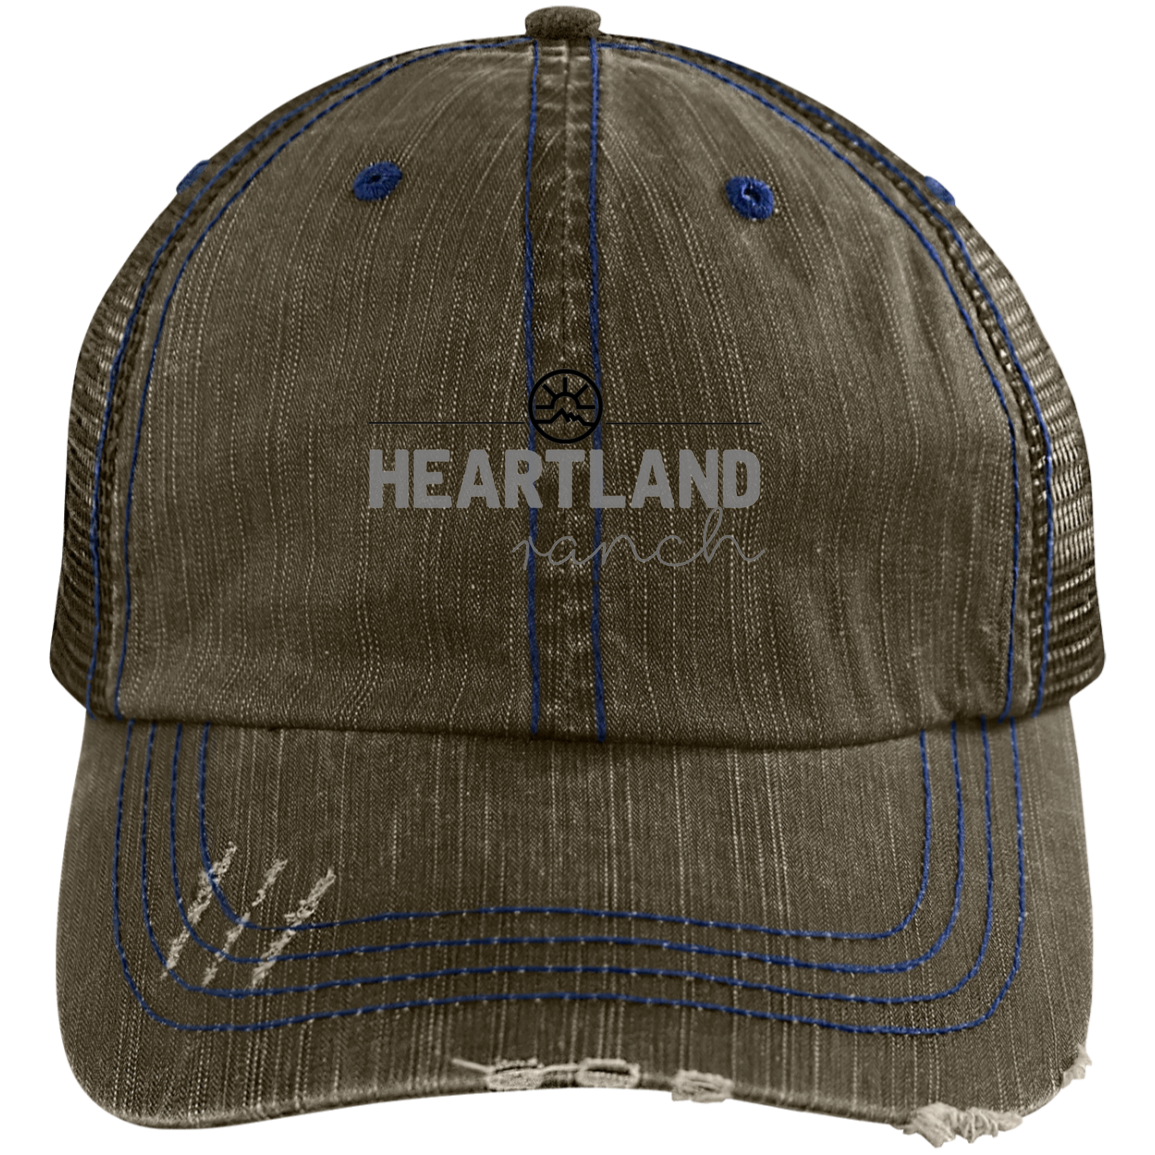 Heartland Ranch 6990 Distressed Unstructured Trucker Cap Hat